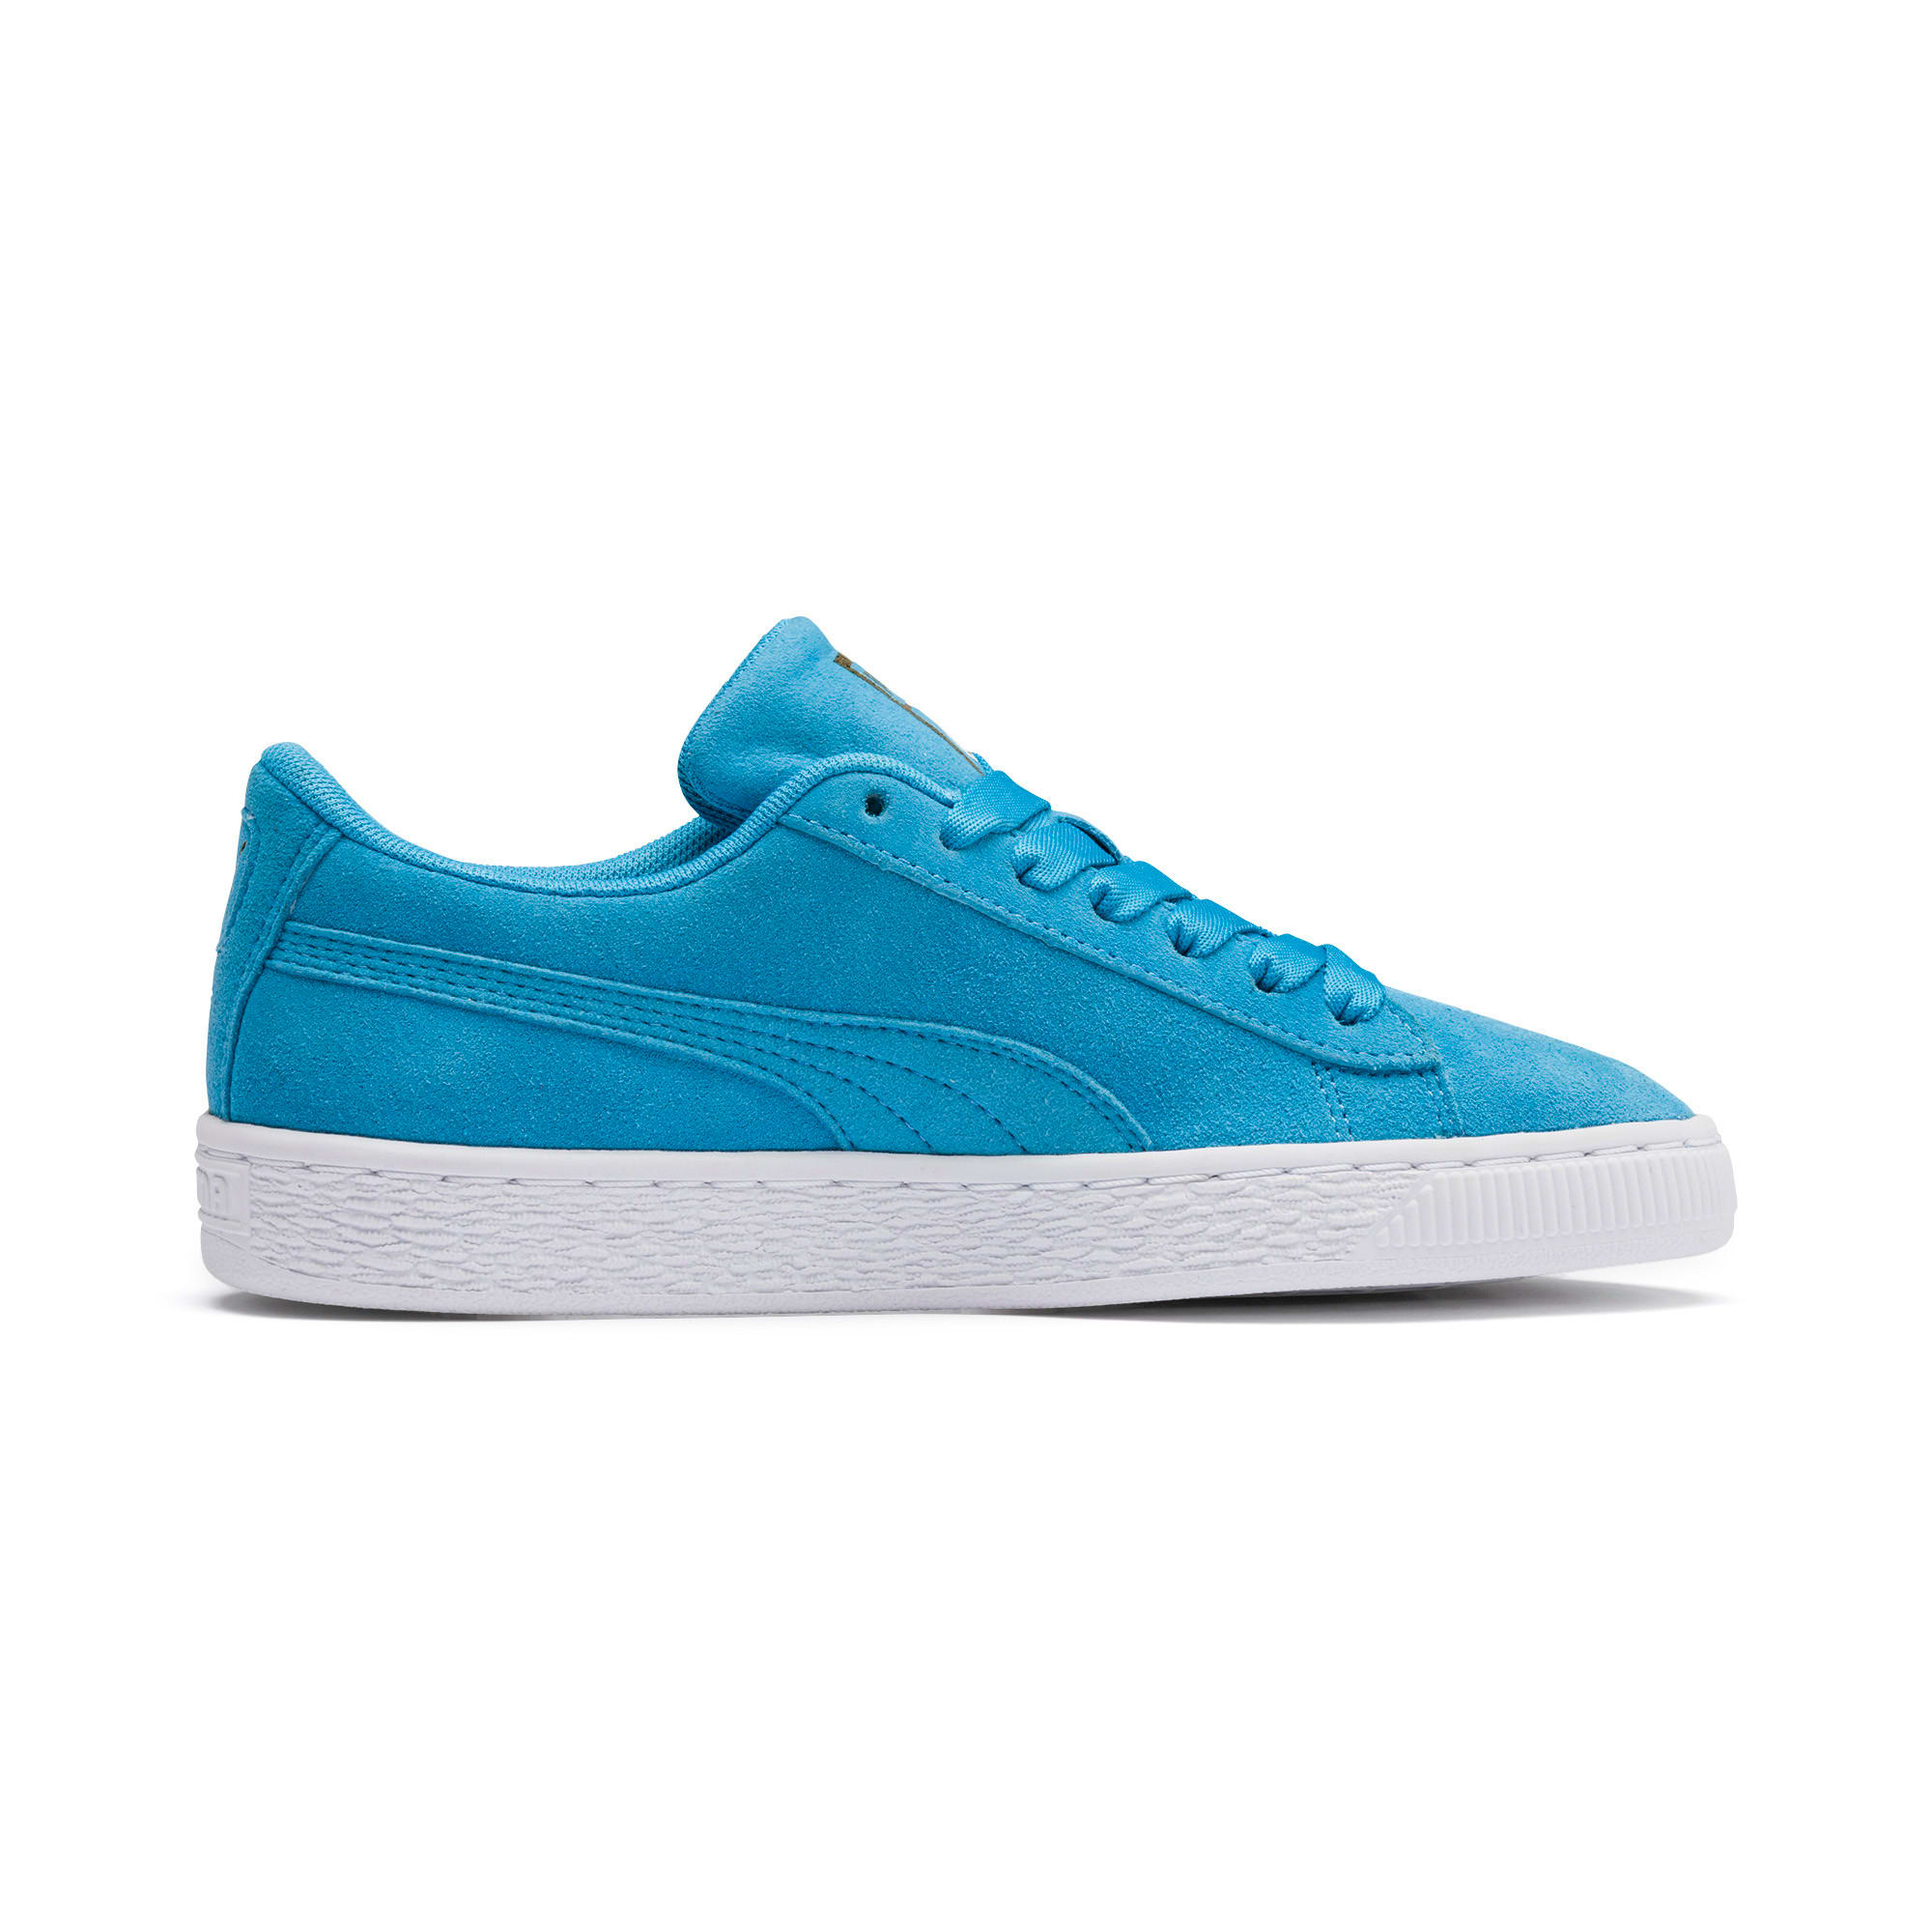 Thumbnail 5 of Sesamstraße 50 Suede Statement Youth Sneaker, Bleu Azur-Puma White, medium